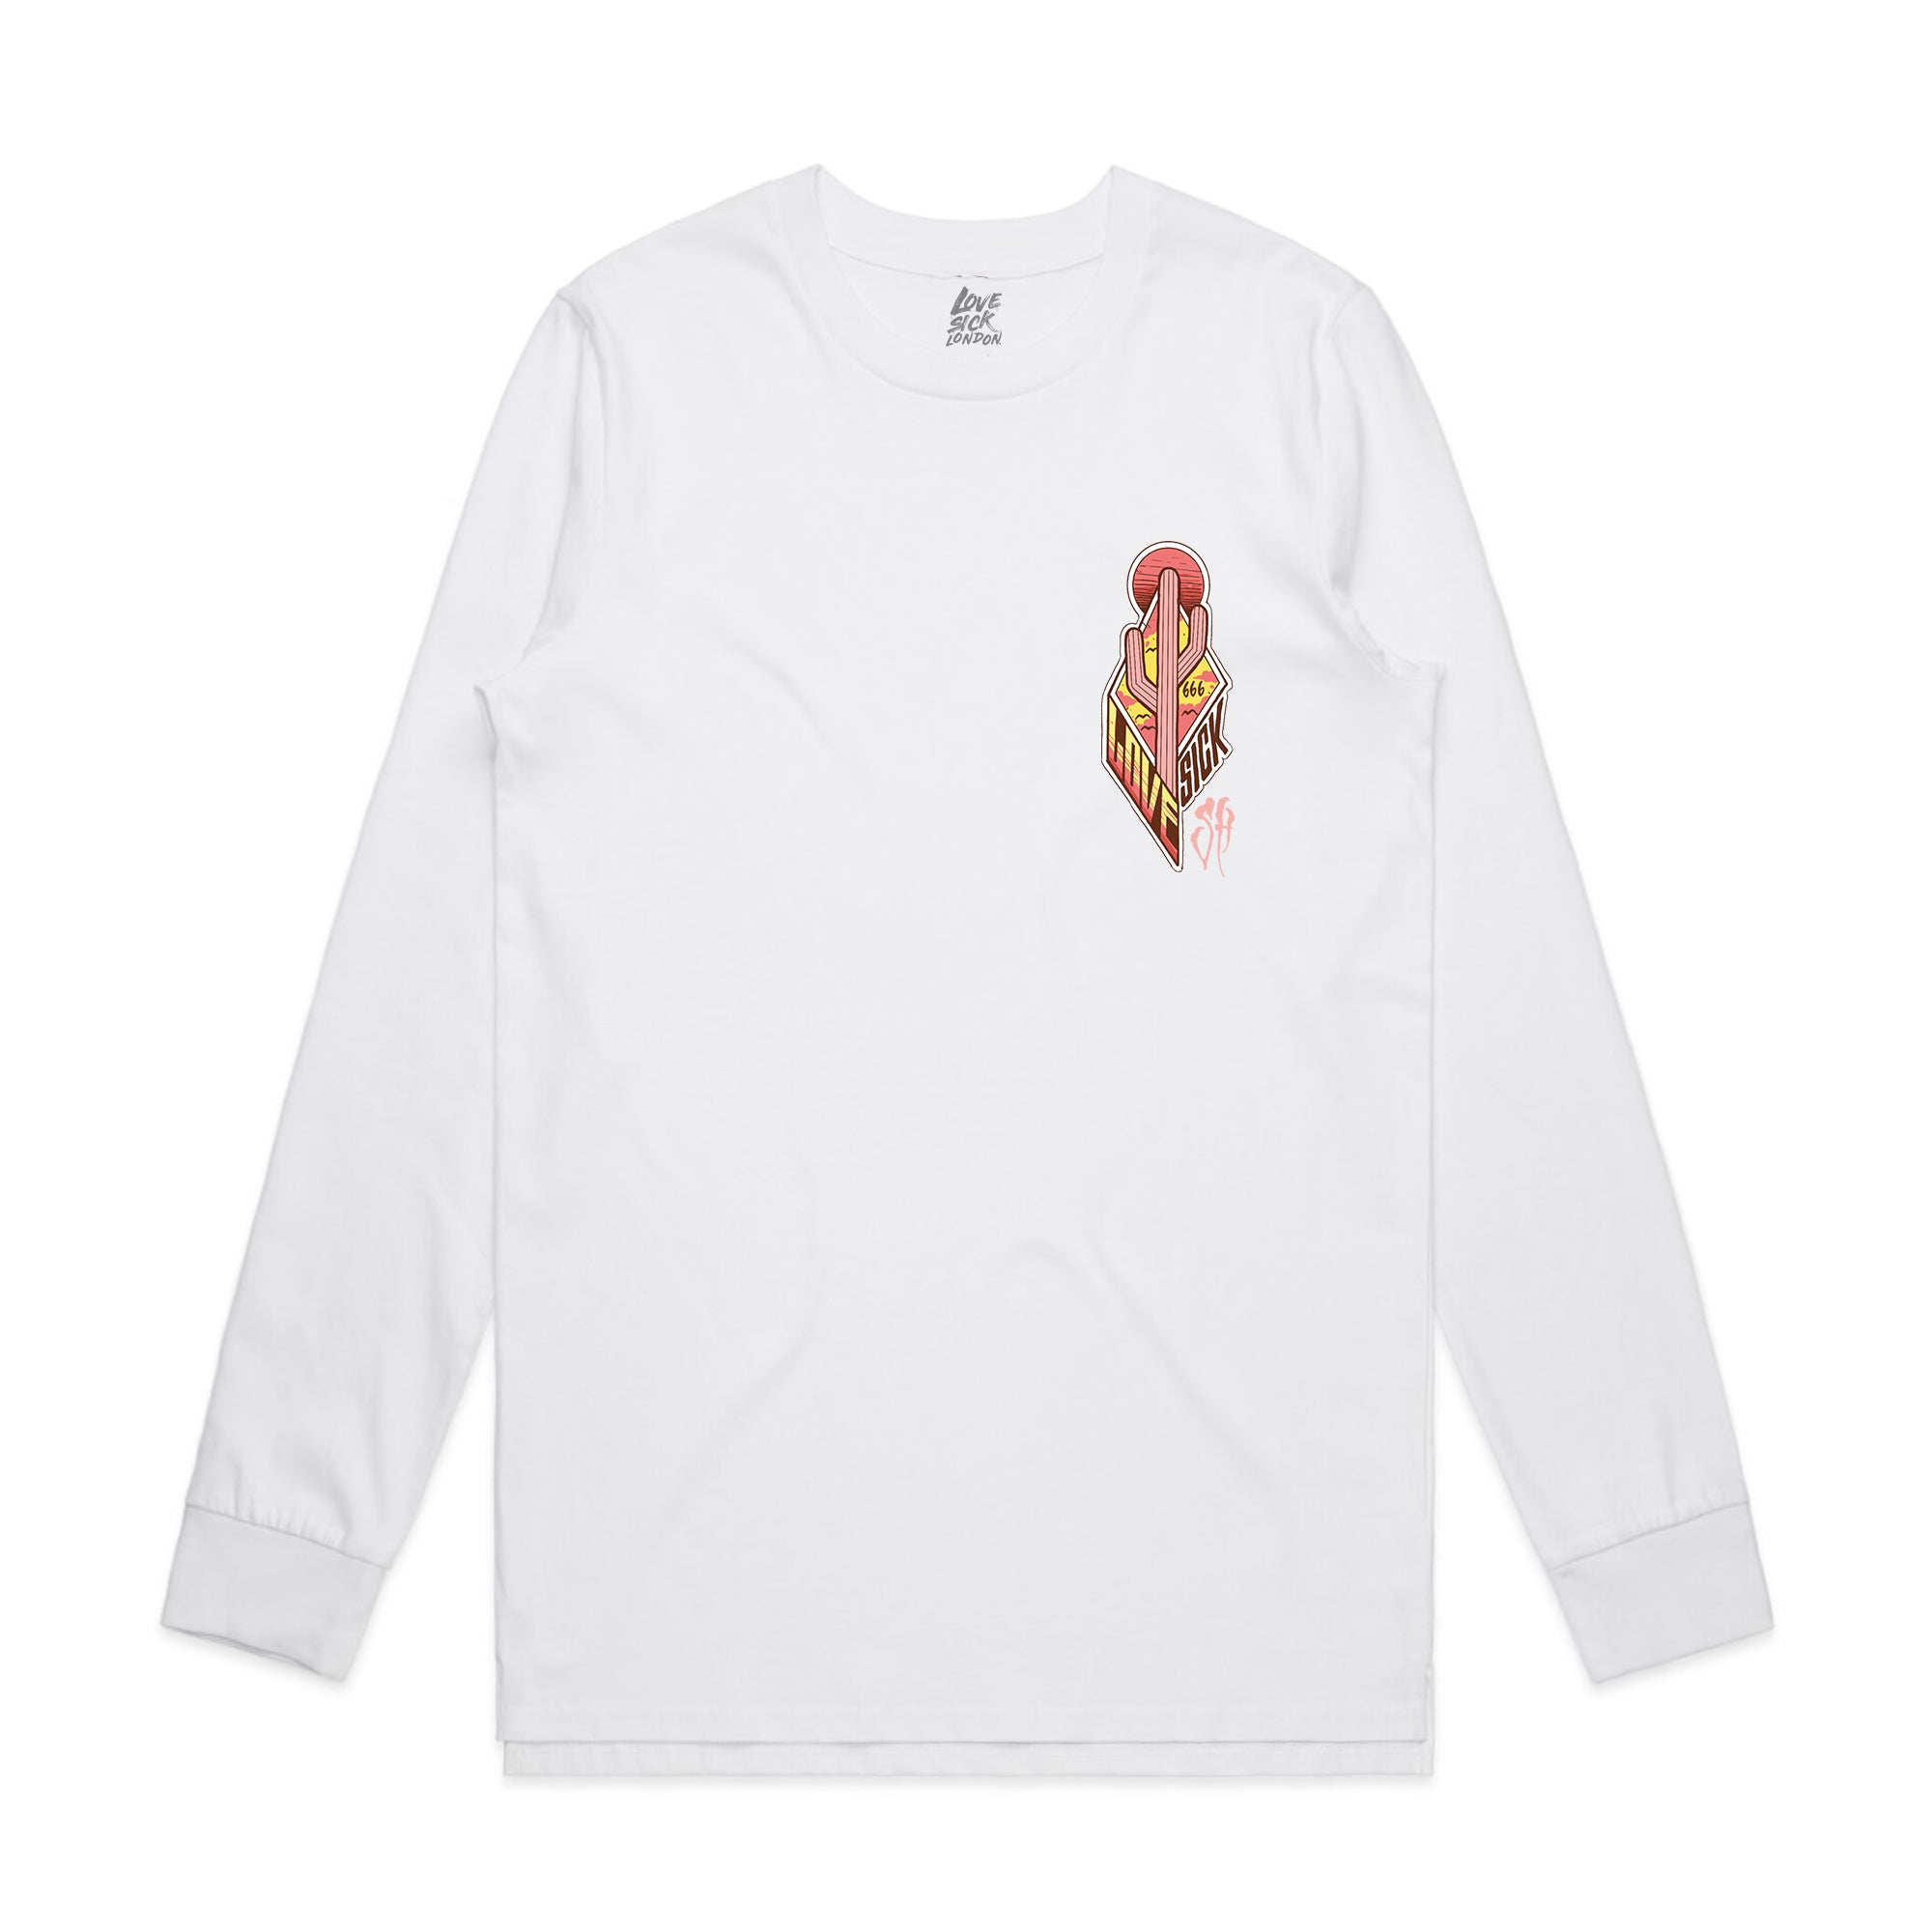 Wild West White long sleeve T-shirt